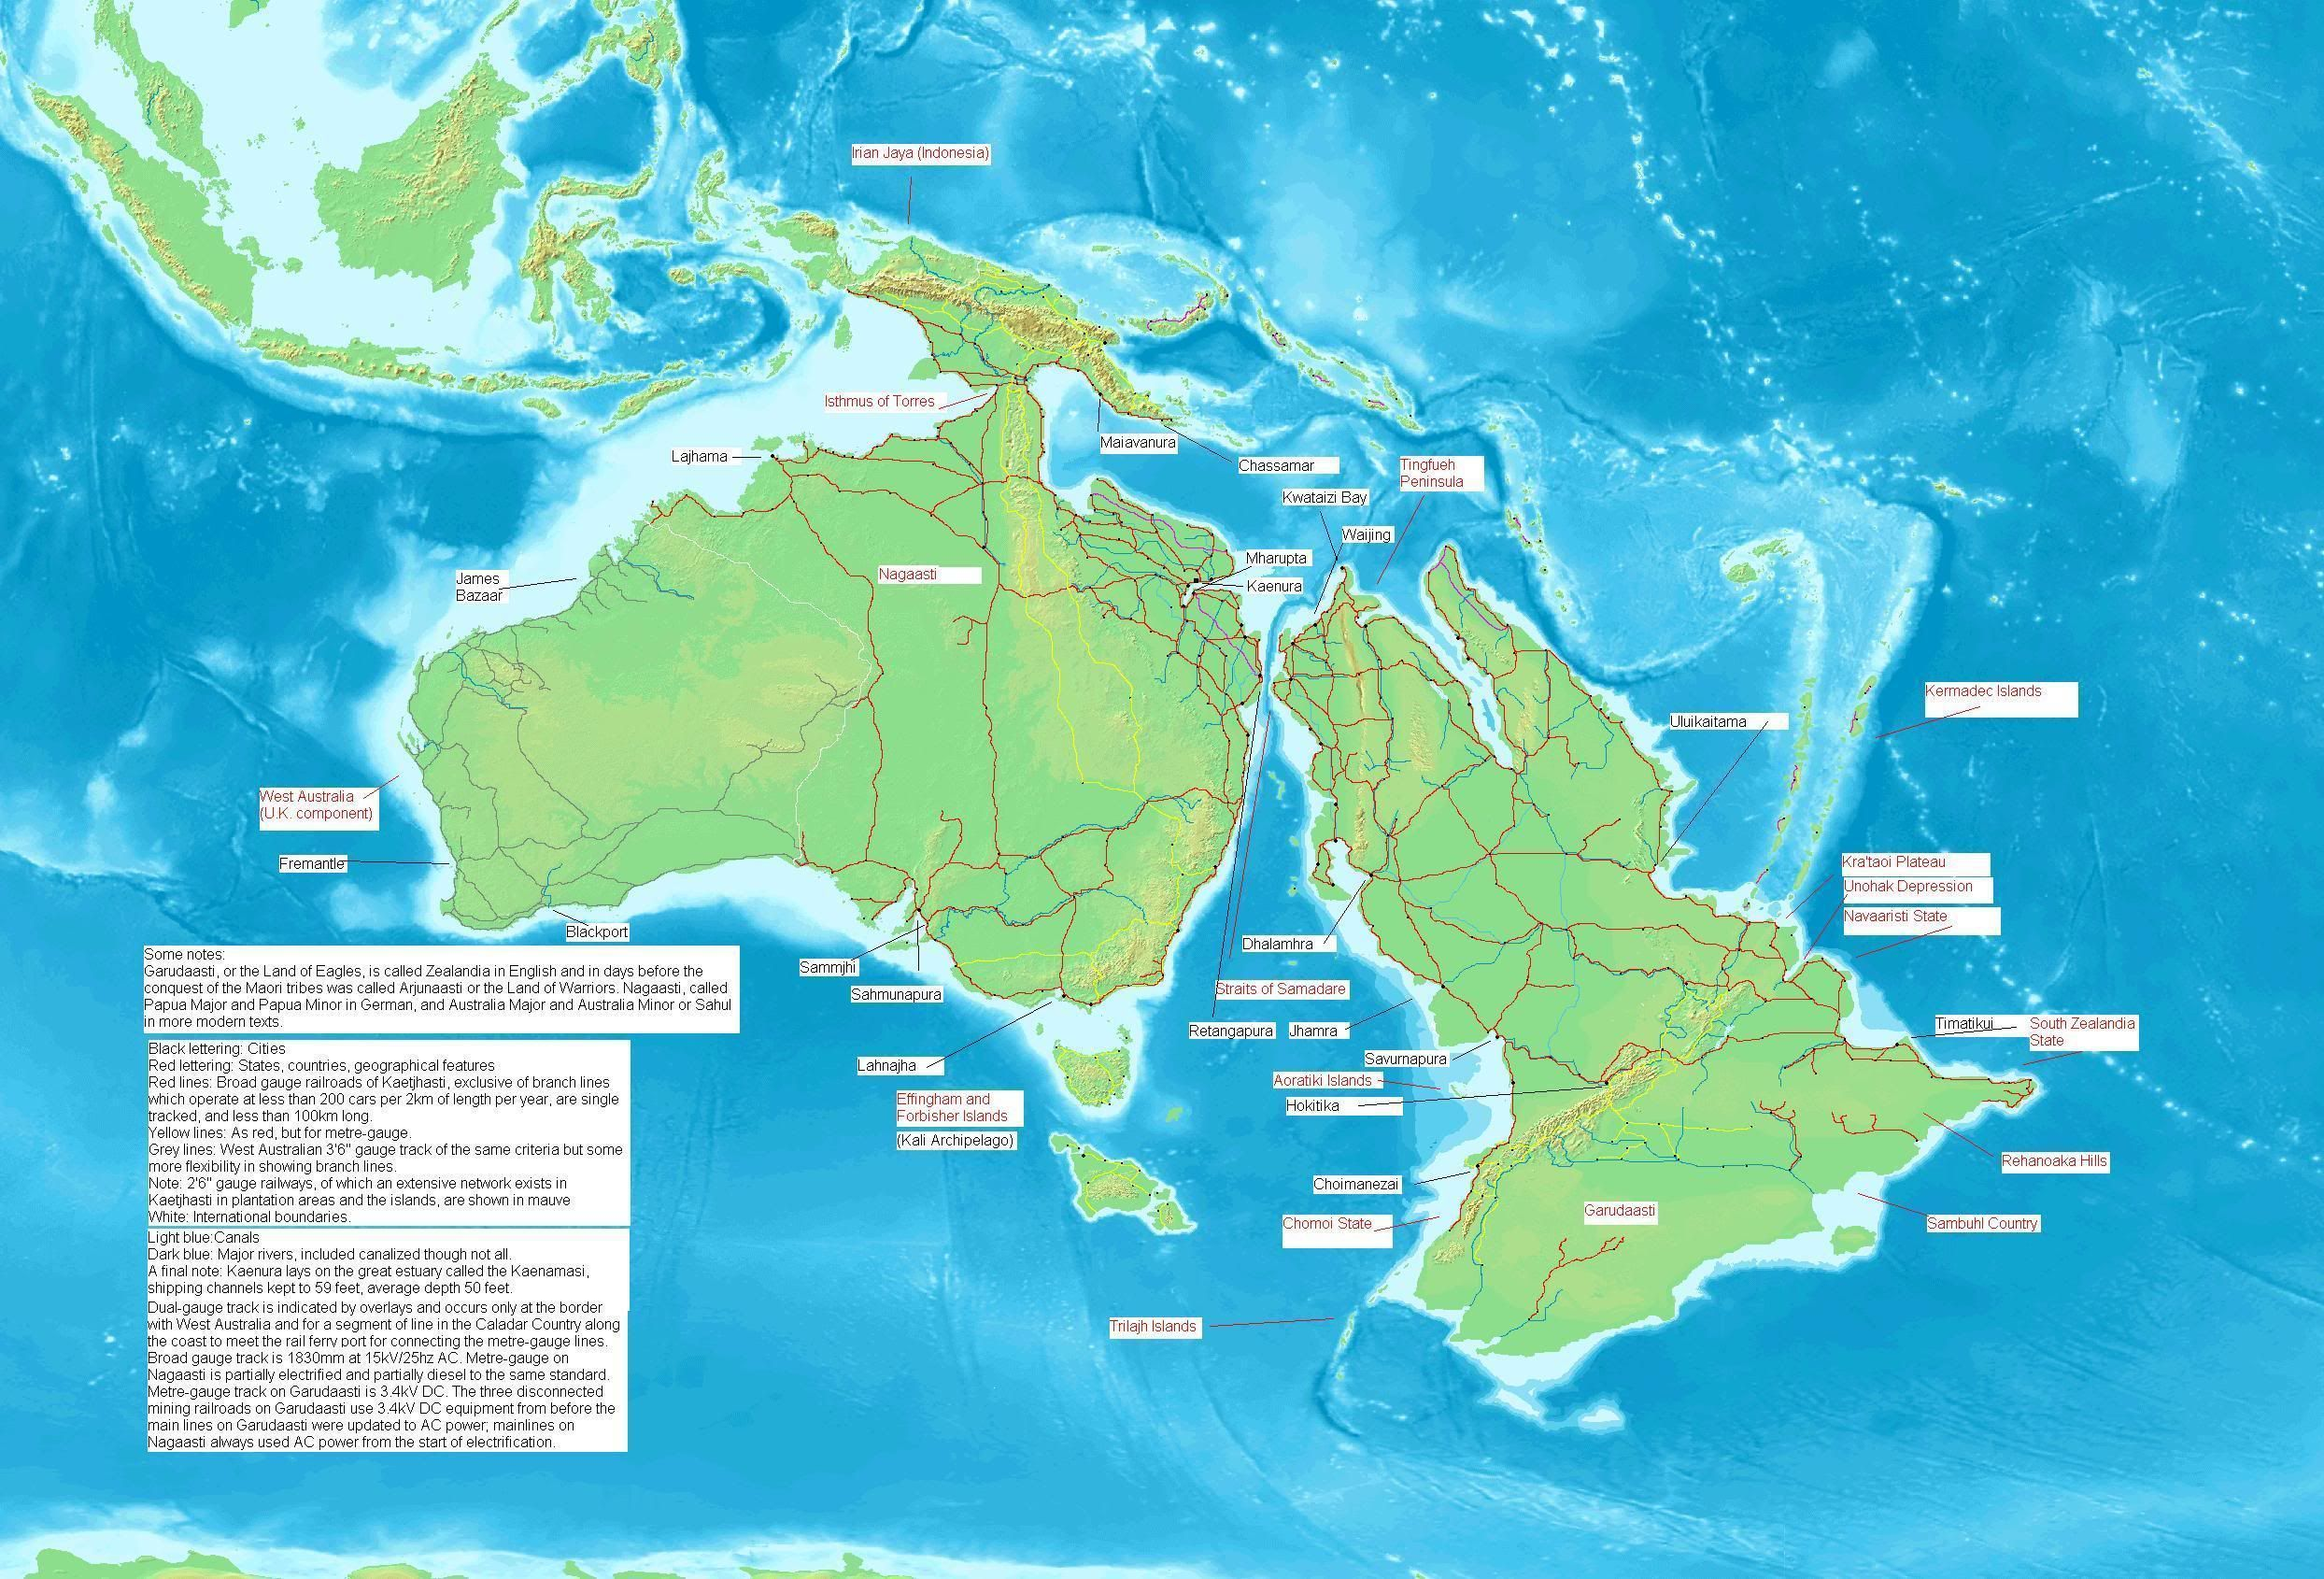 Australia And Zealandia During The Last Ice Age When The Sea Level